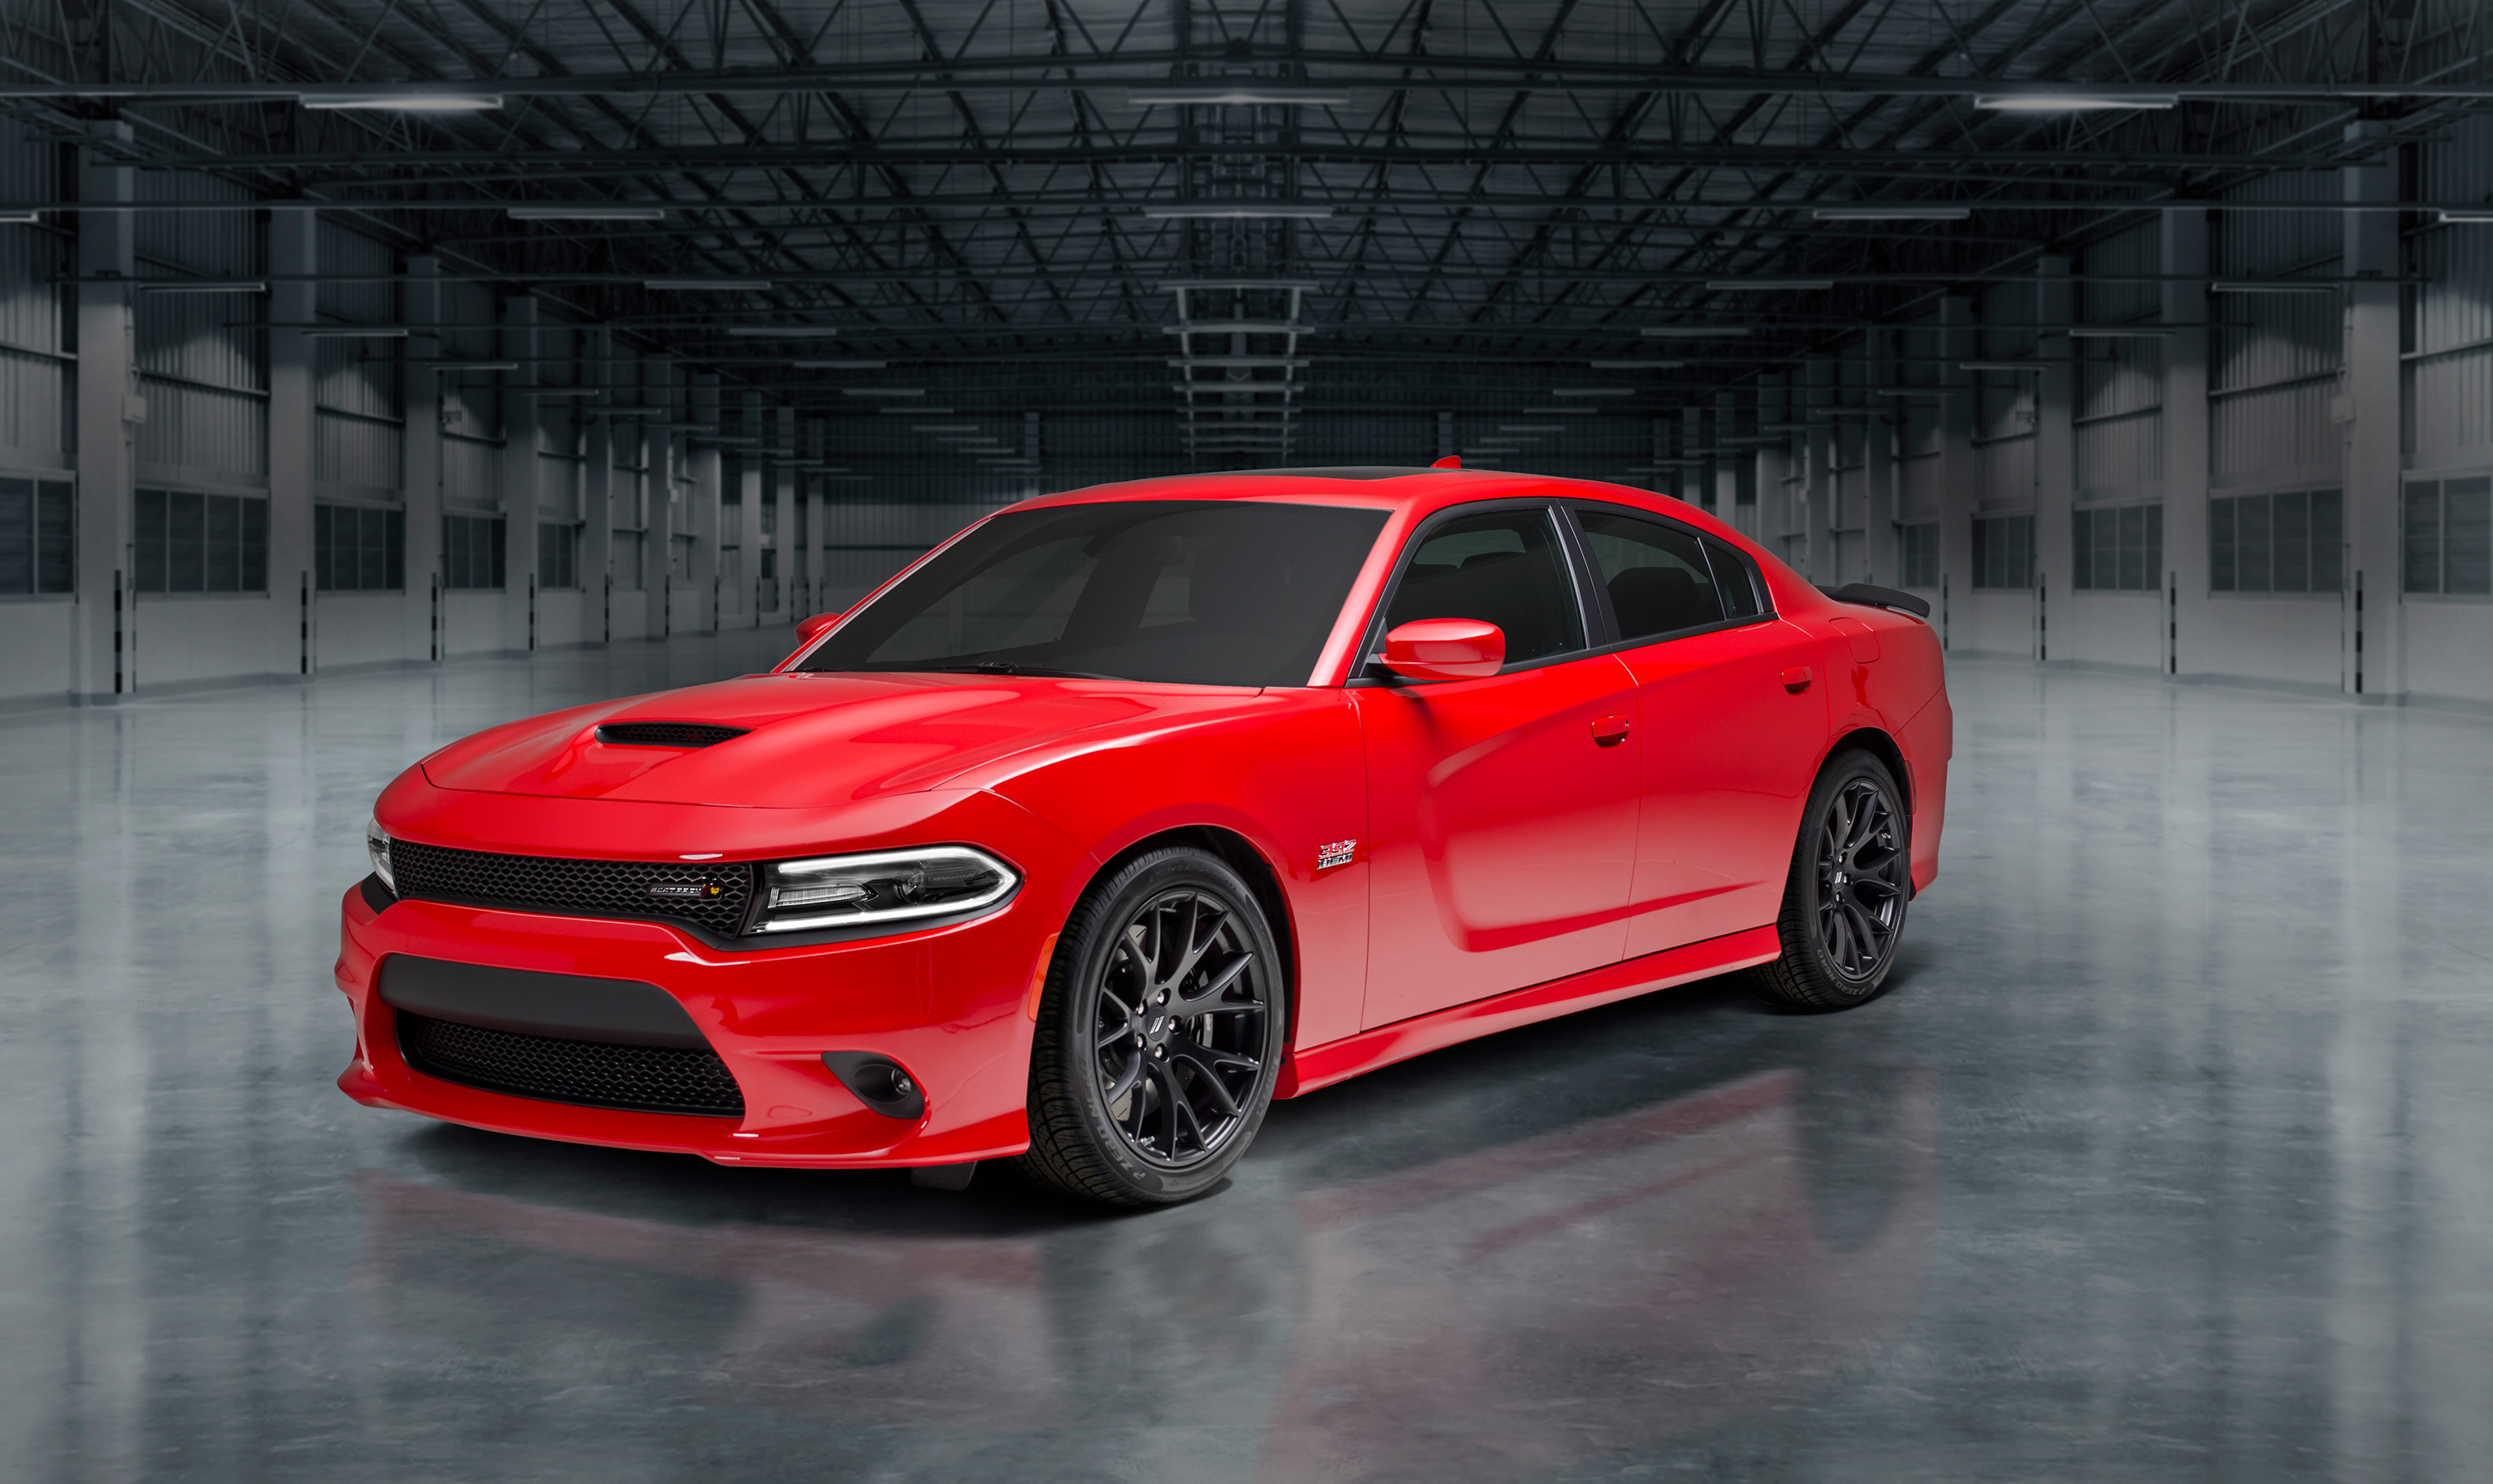 Dodge Charger RT Scat Pack wallpaper Gallery 3000x1786